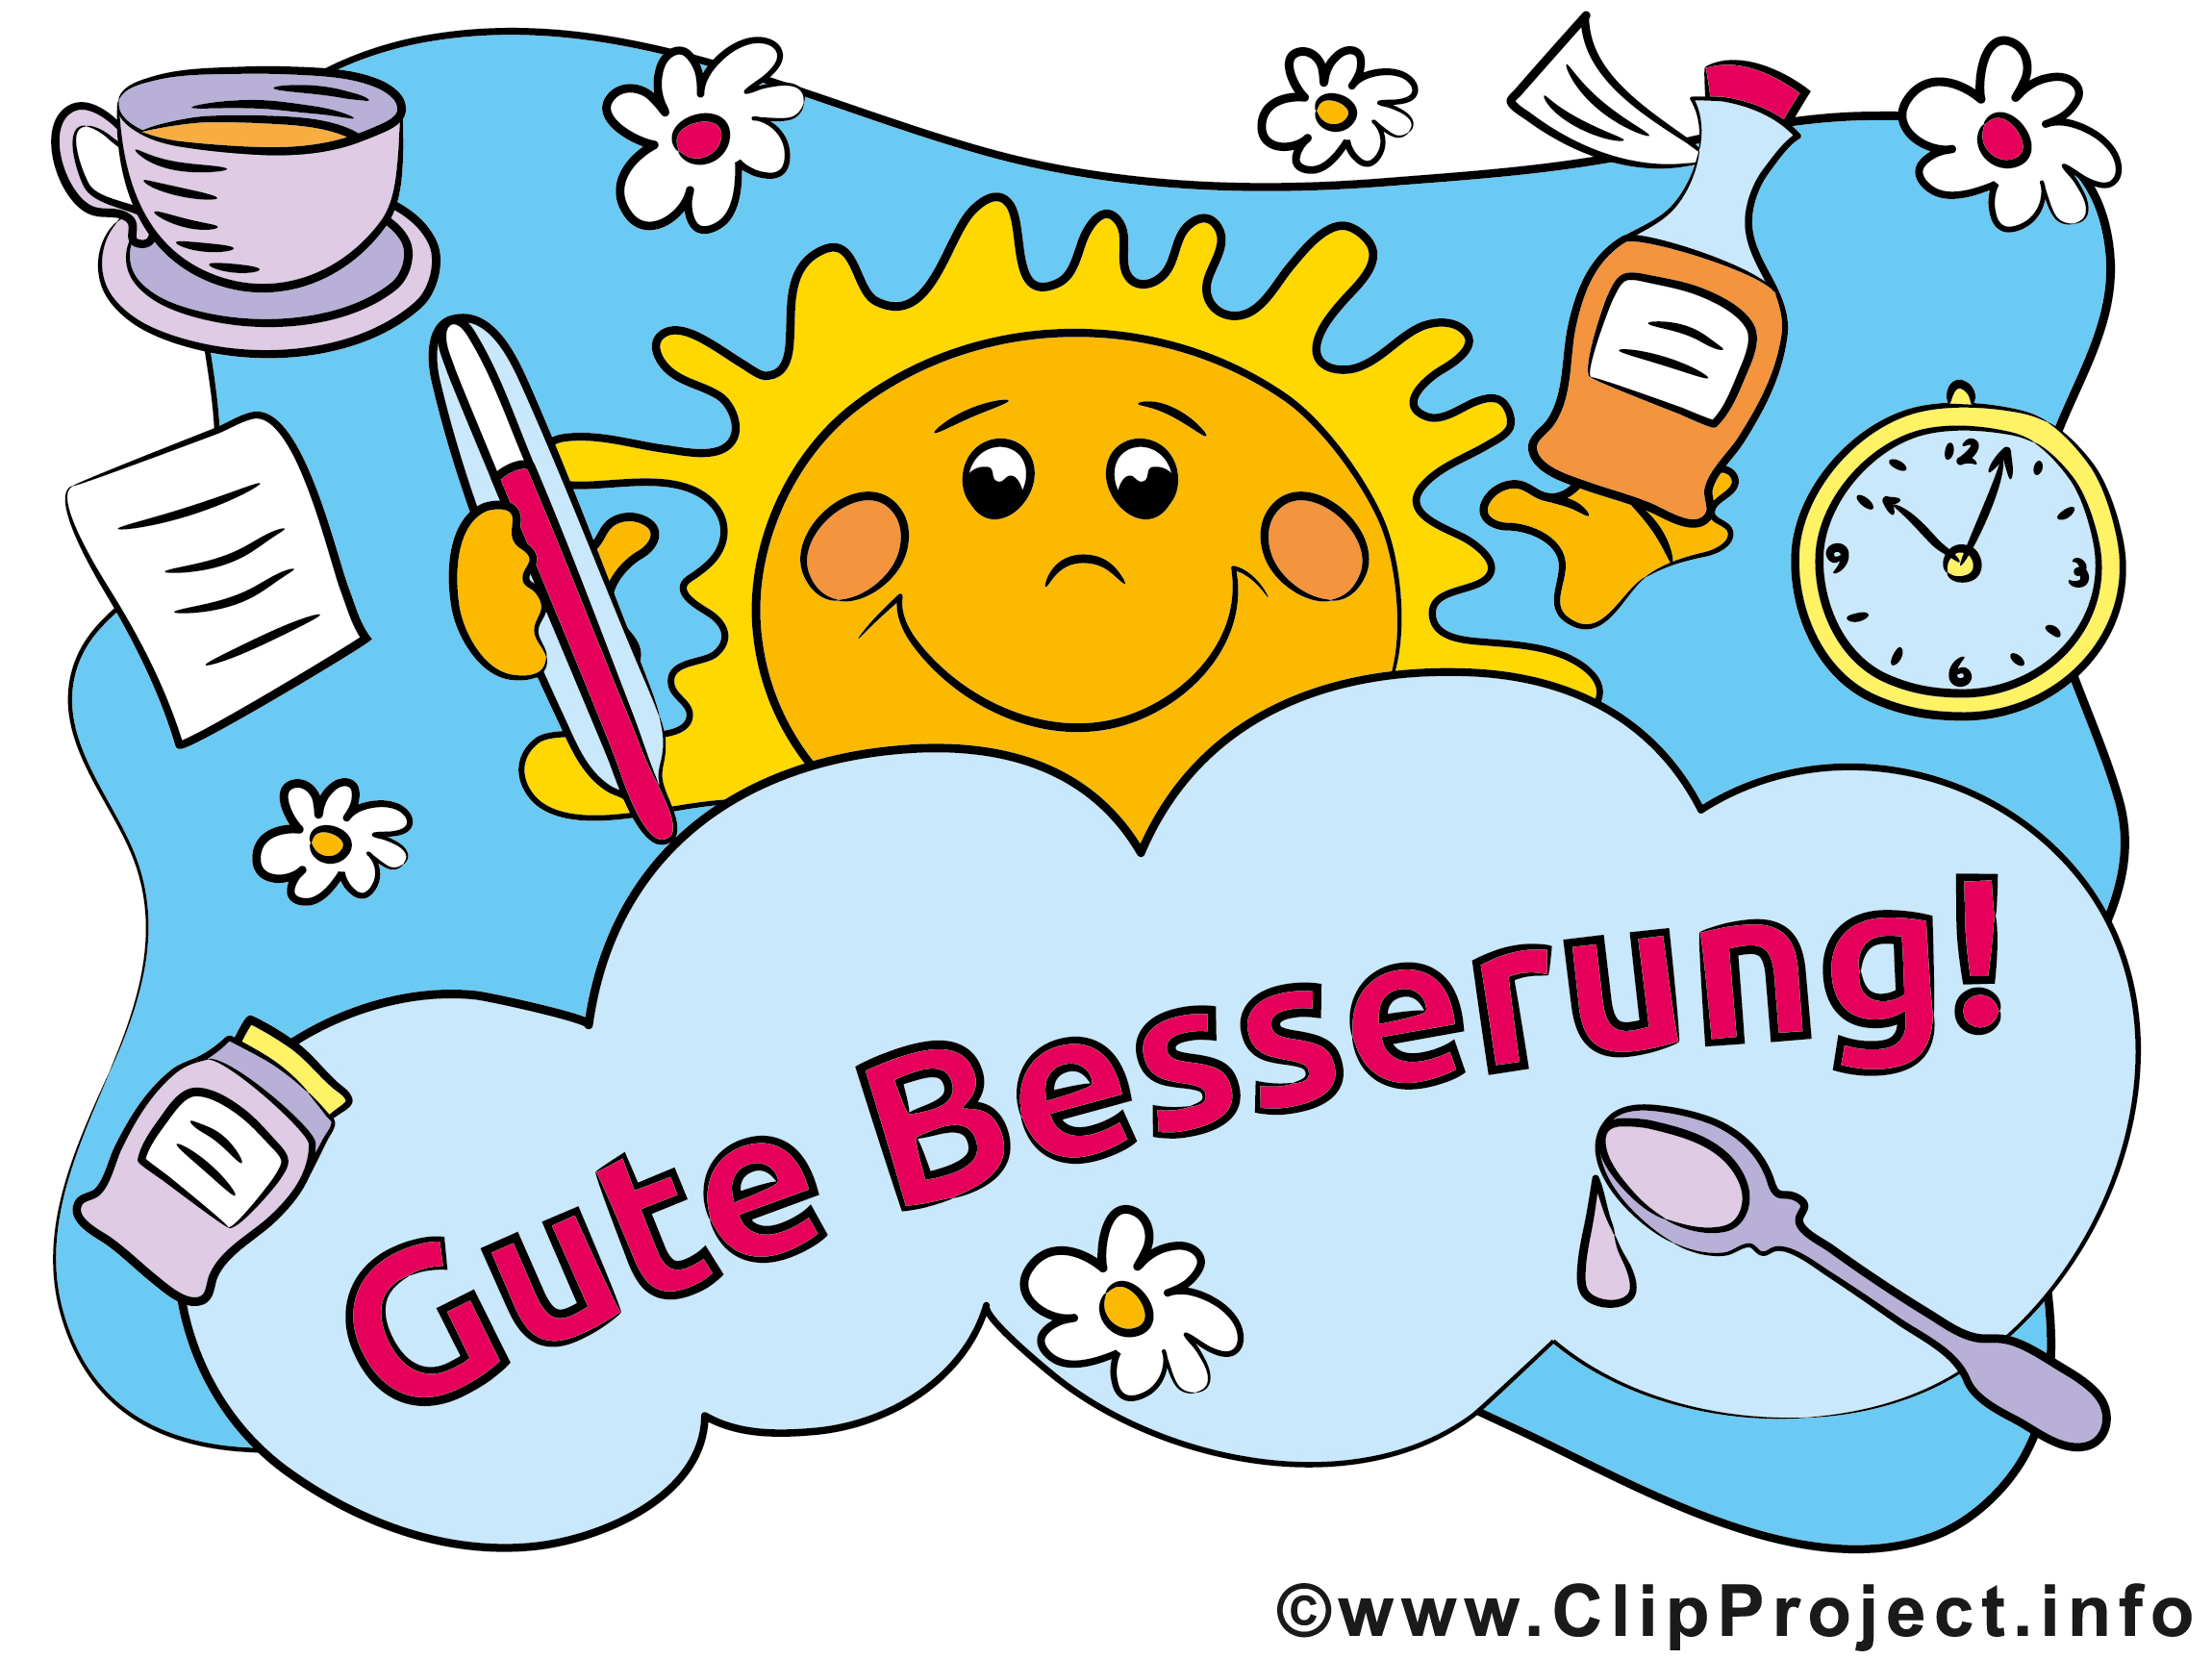 Cliparts gute besserung picture free library E Card gute Besserung picture free library